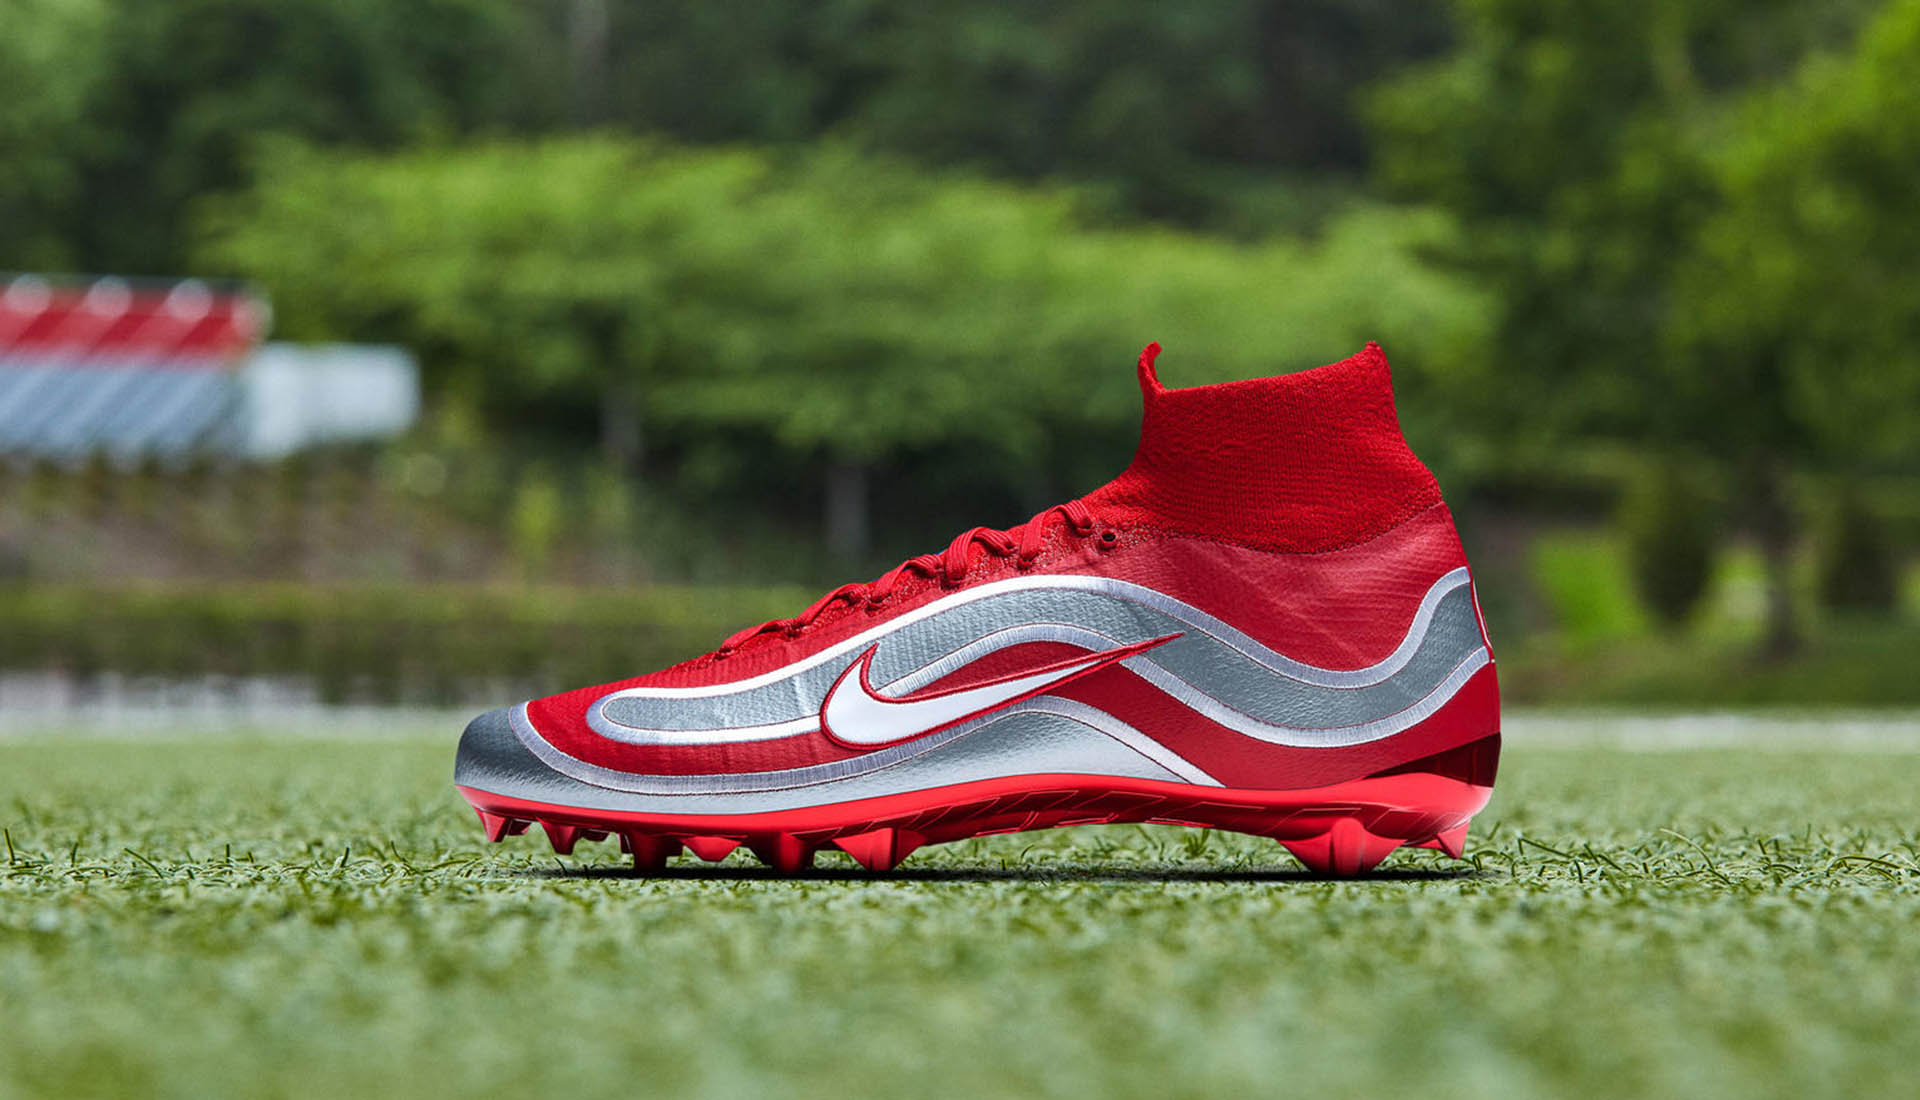 Nike Present Odell Beckham Jr. With R9 Inspired Mercurial